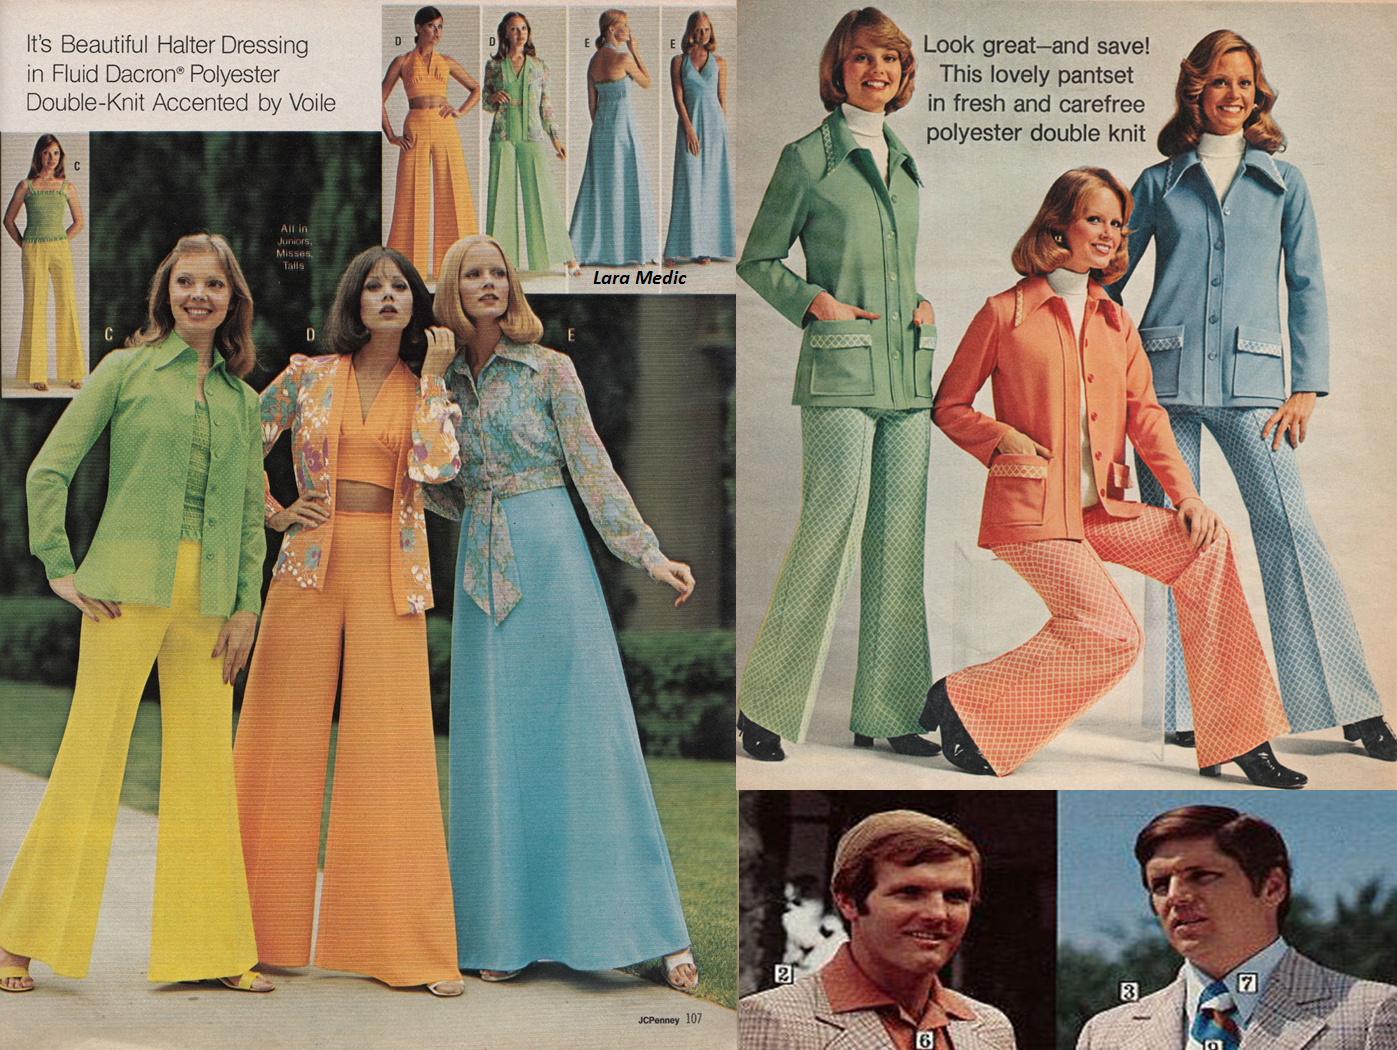 Fashion Trends in the 1970s: The 1970s was the disco age ...